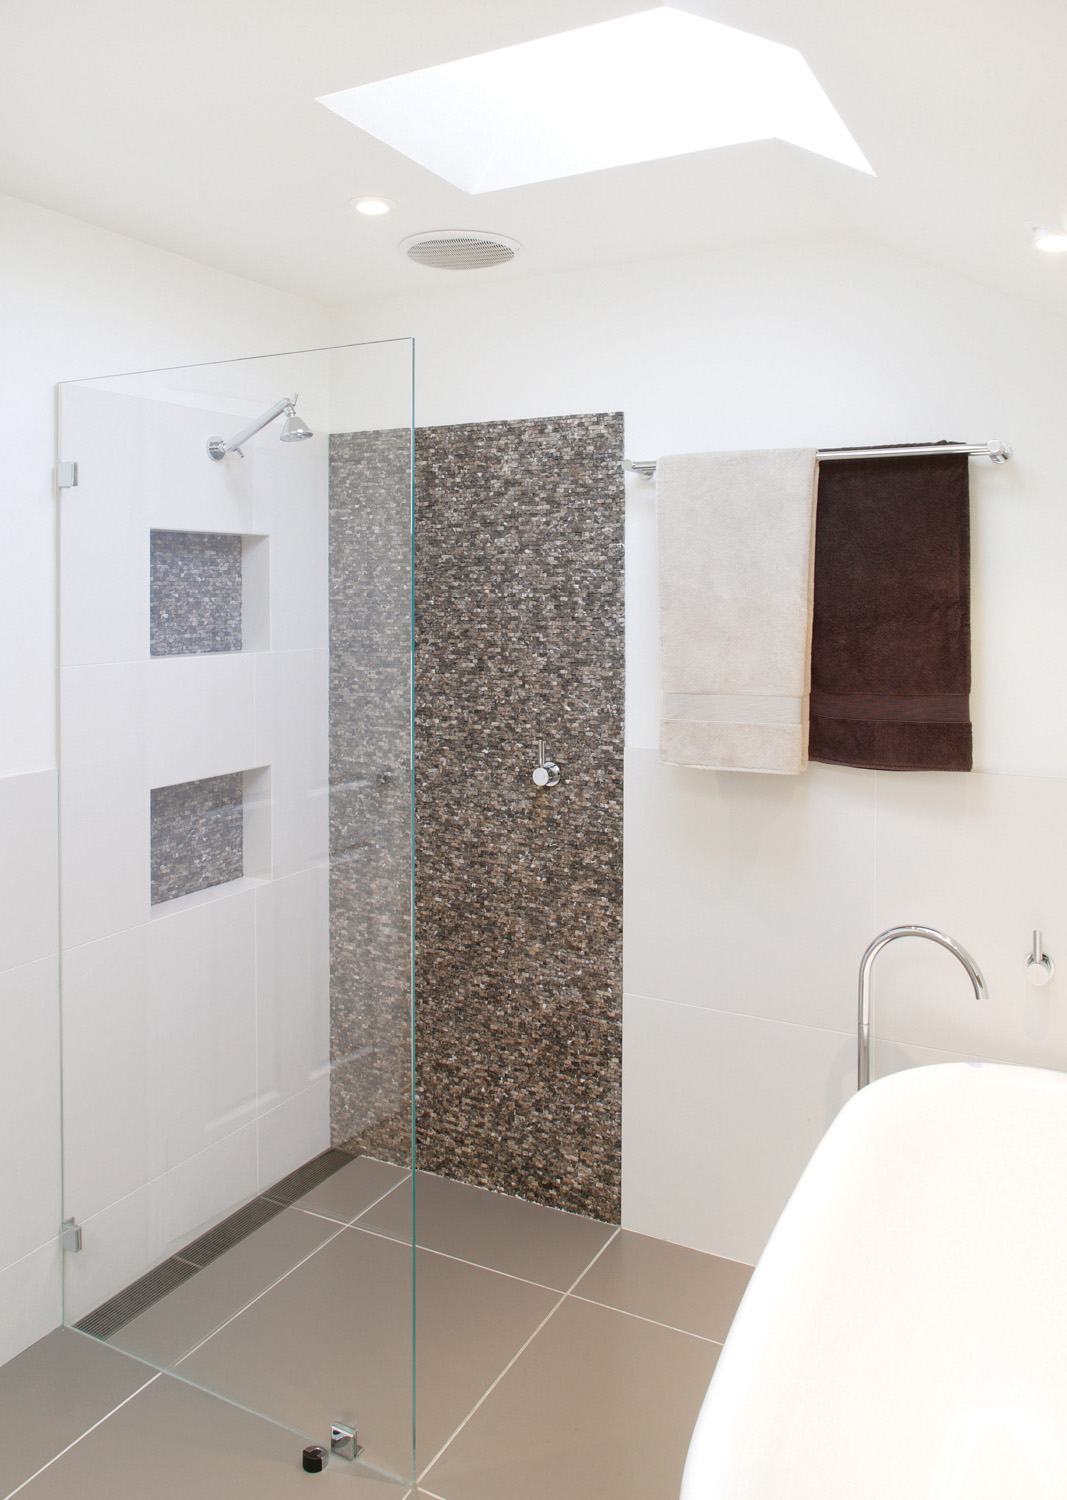 This New York themed bathroom located in Australia is eye-catching and spacious